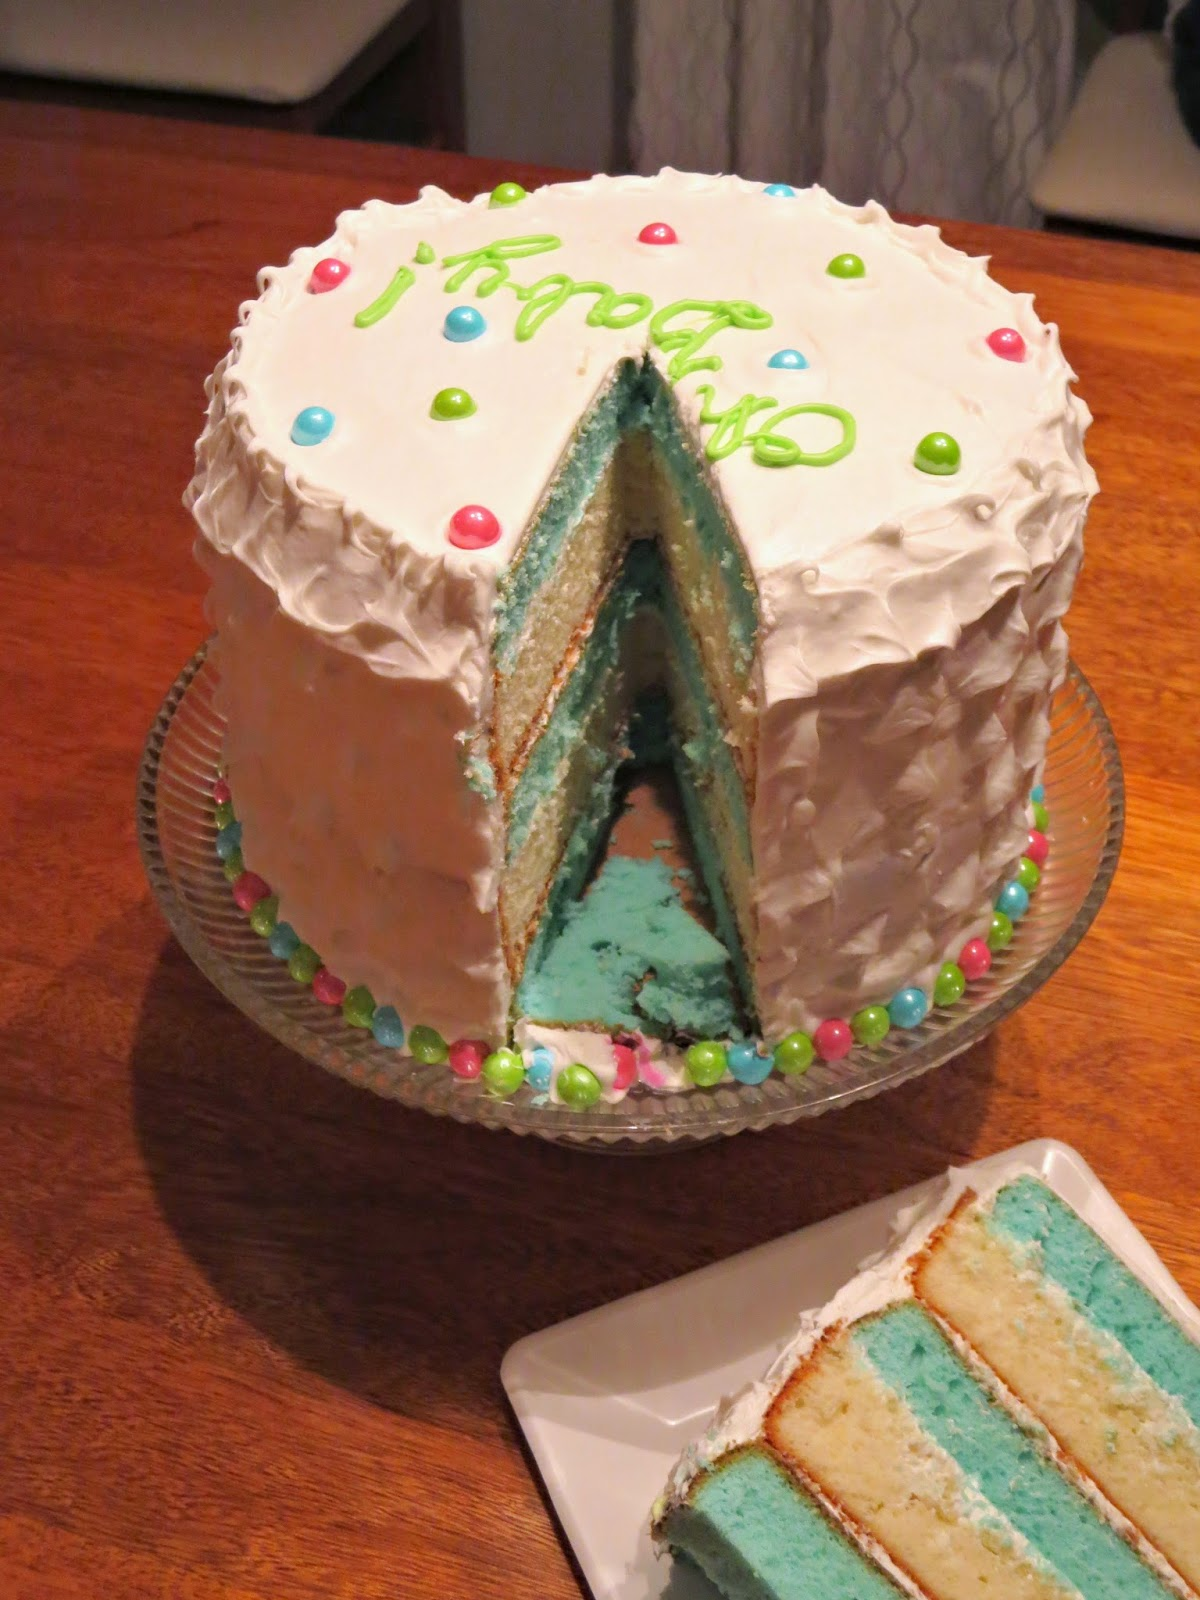 Baby Gender Reveal Cake - Inside of Cake & Cake Slice - It's a BOY